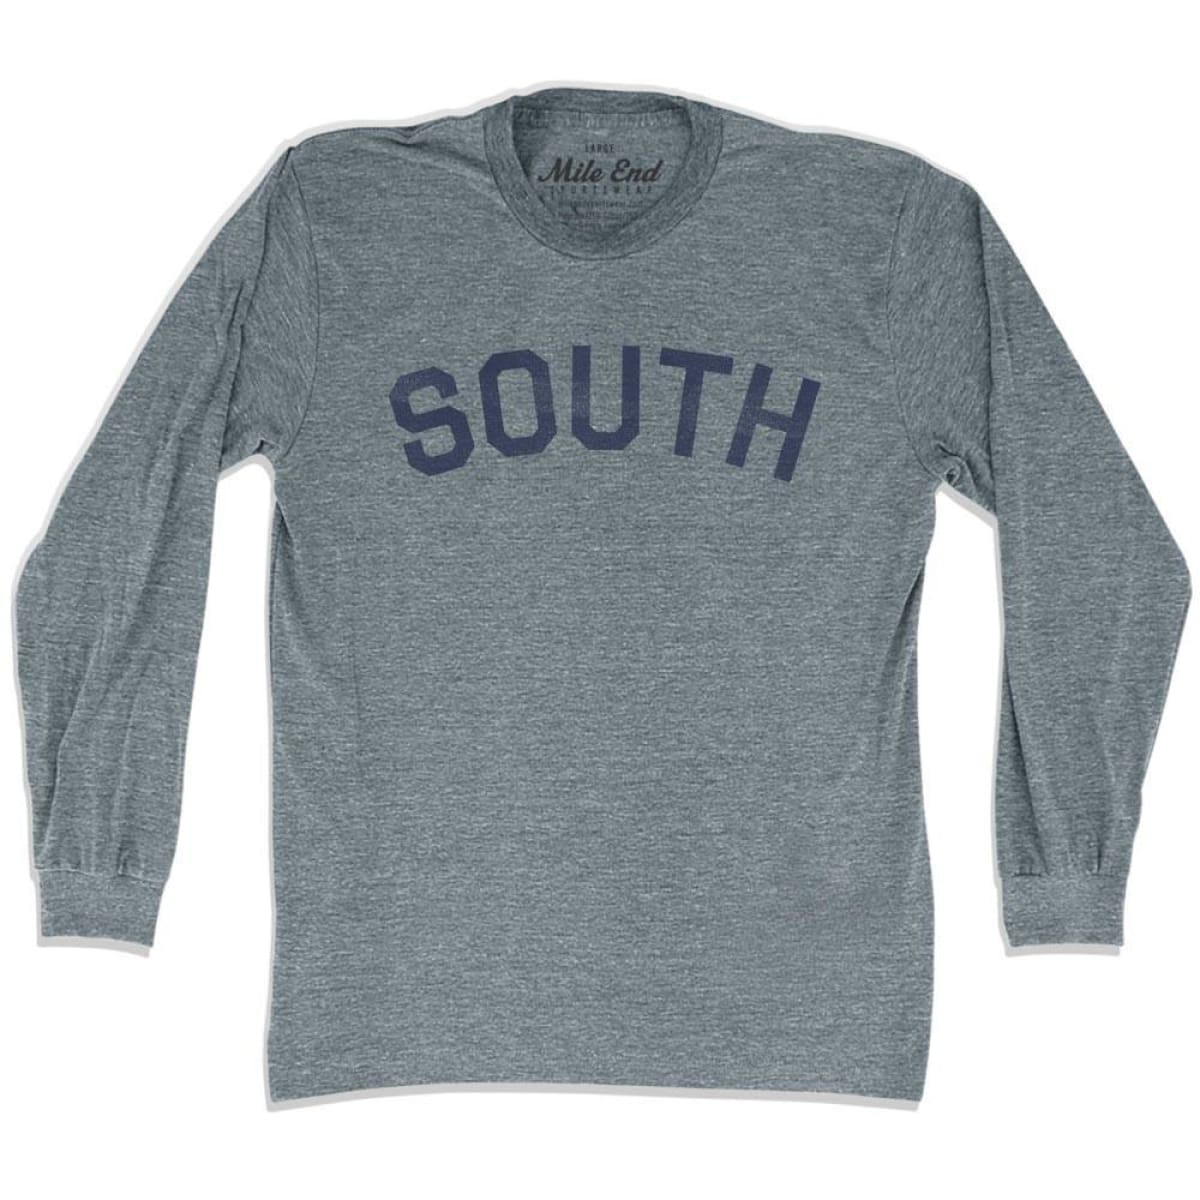 South City Vintage Long Sleeve T-shirt - Athletic Grey / Adult X-Small - Mile End City